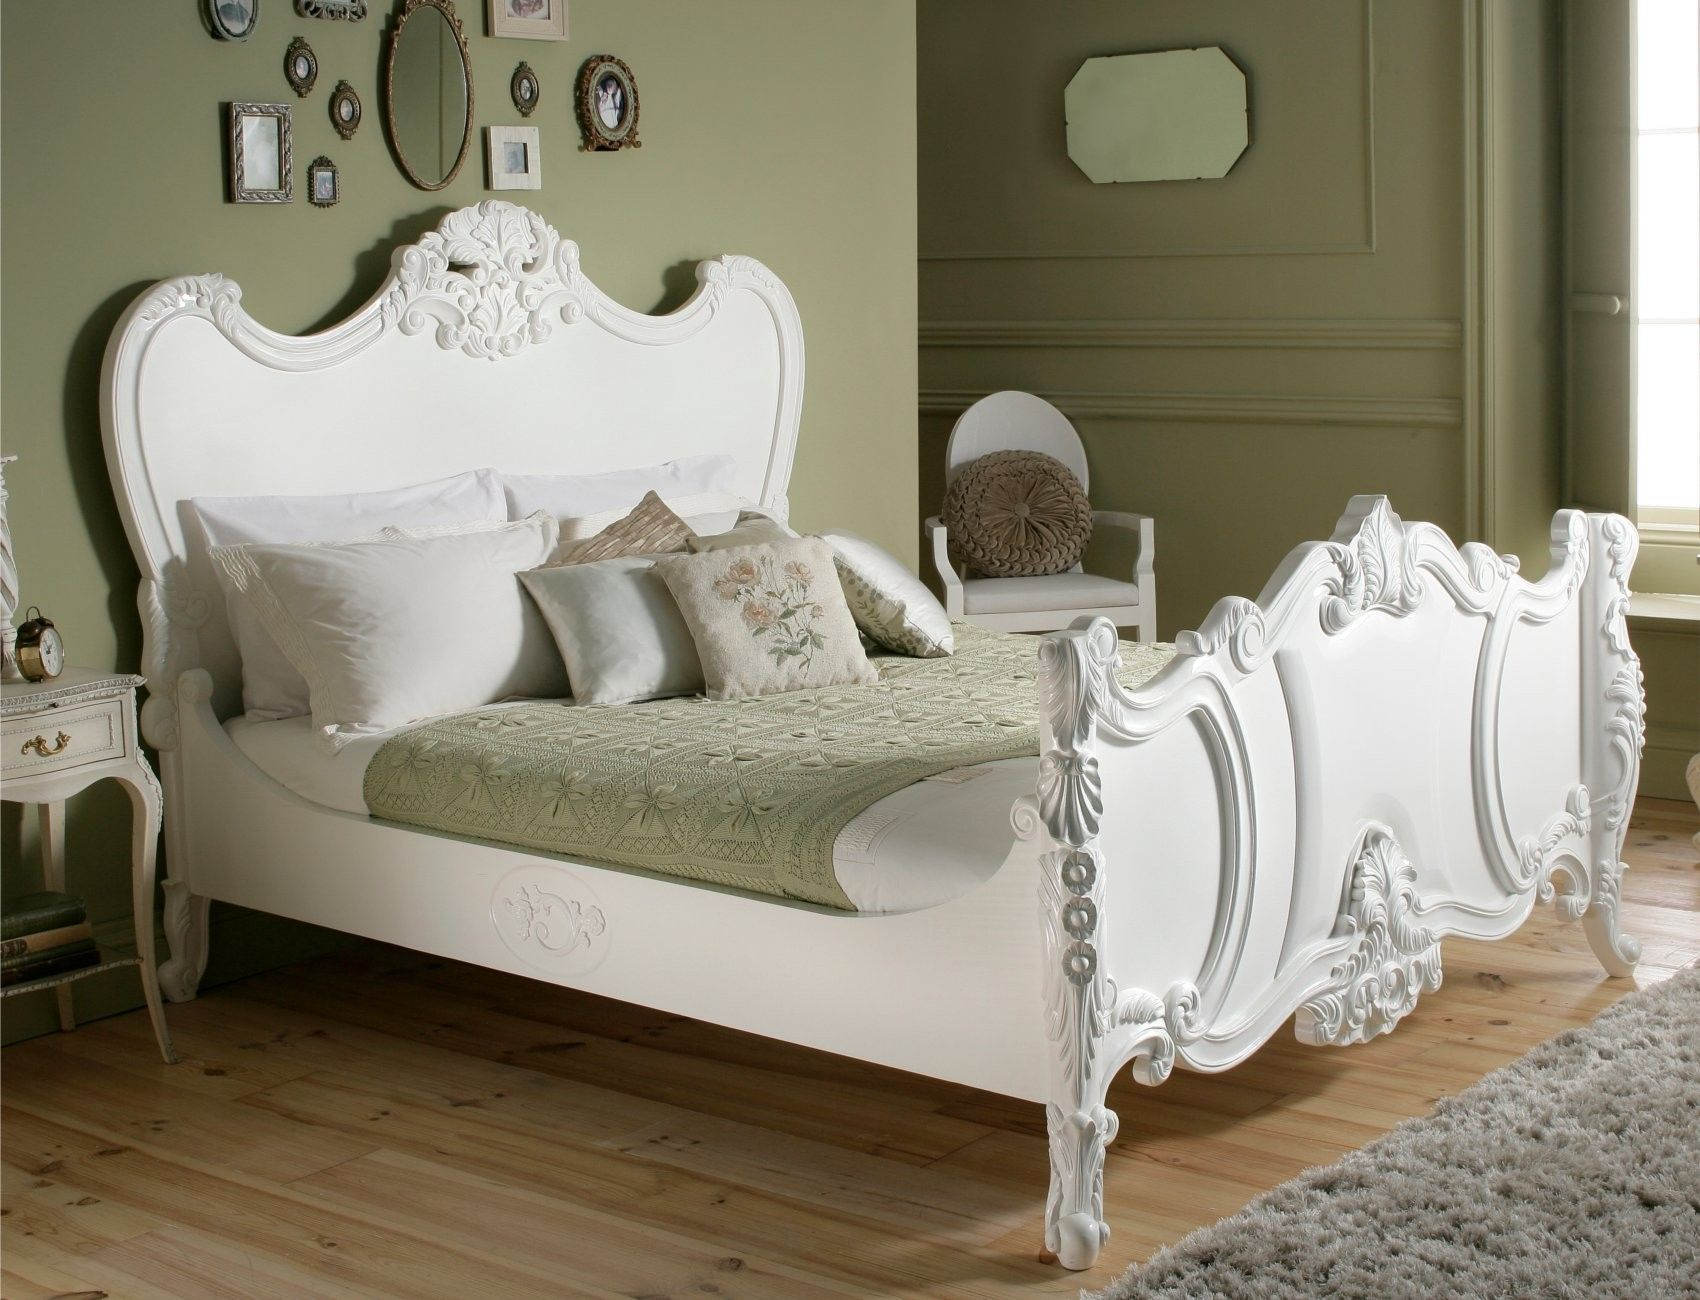 Loire French Style White Wooden Bed by Sleep Sanctuary